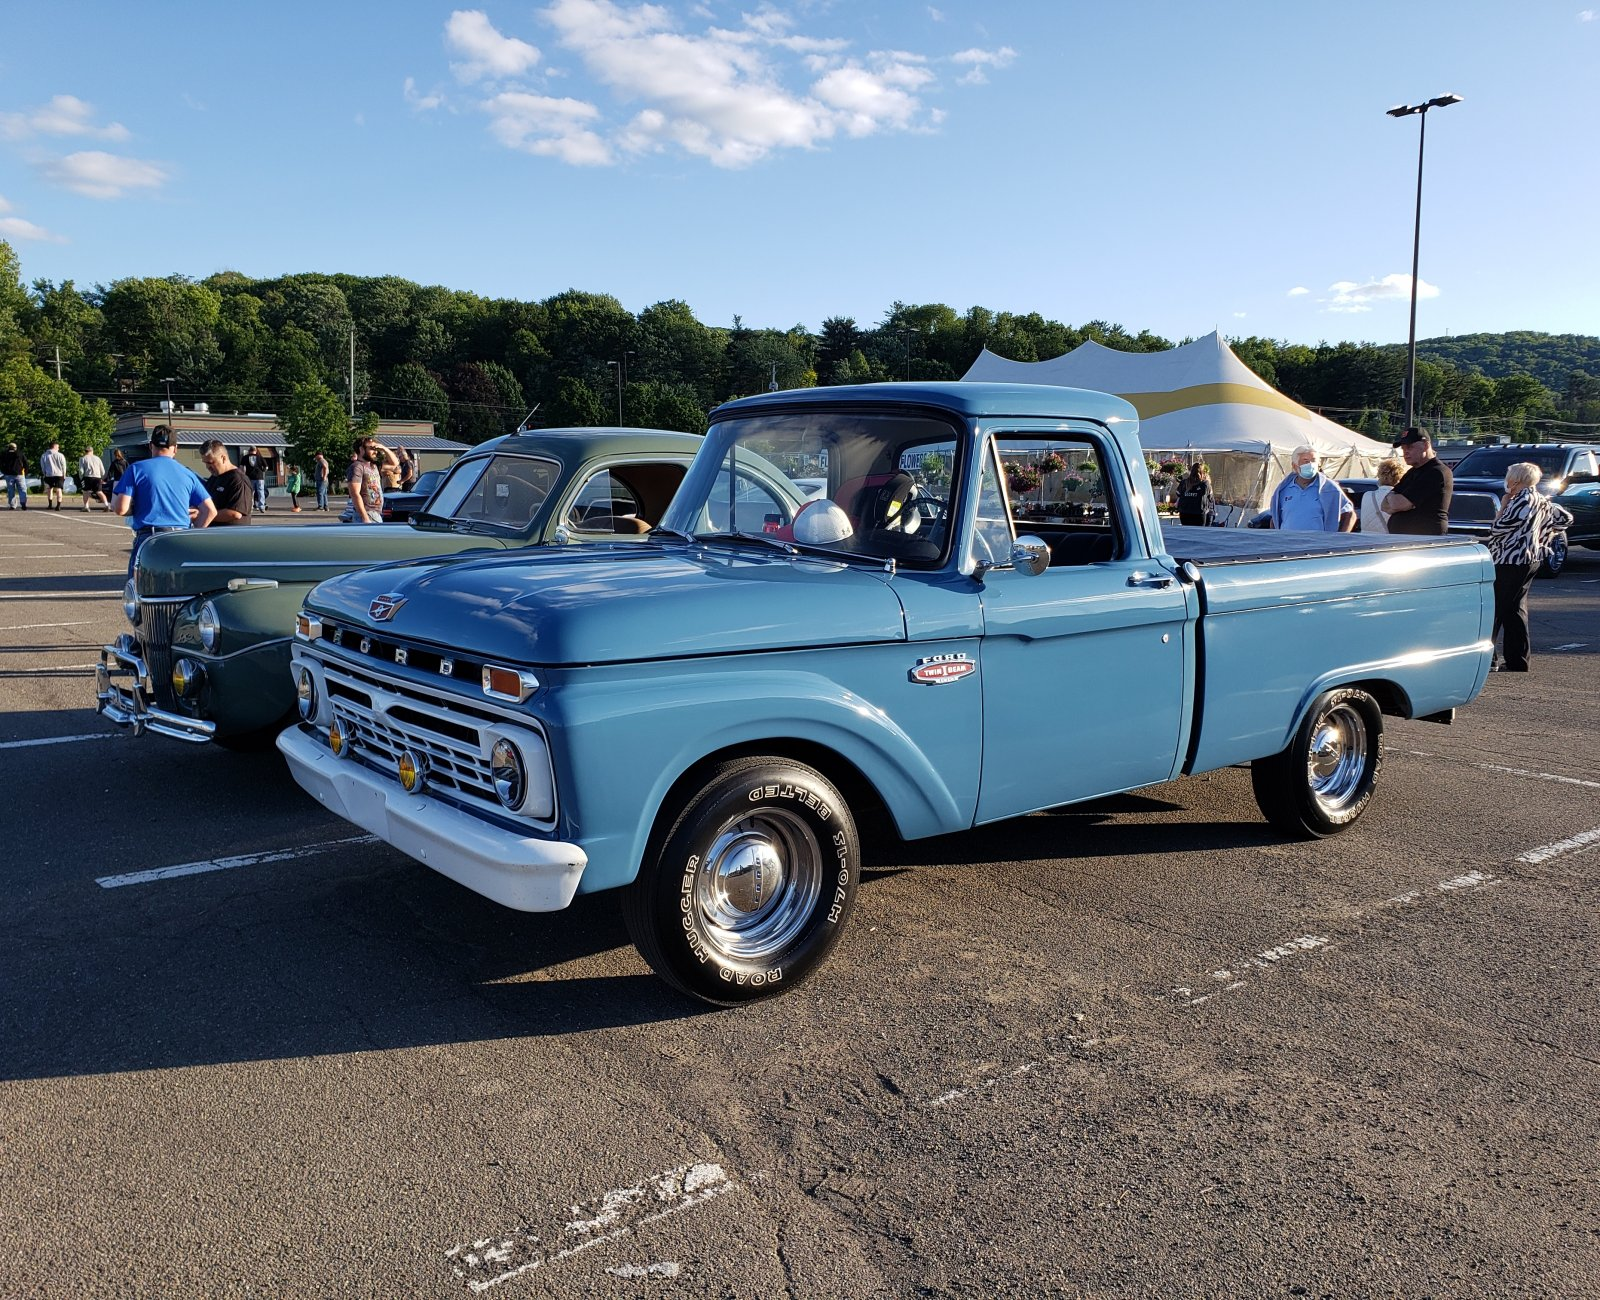 1966 Ford F100 Story About Truck Owner Chris F. 6.jpg